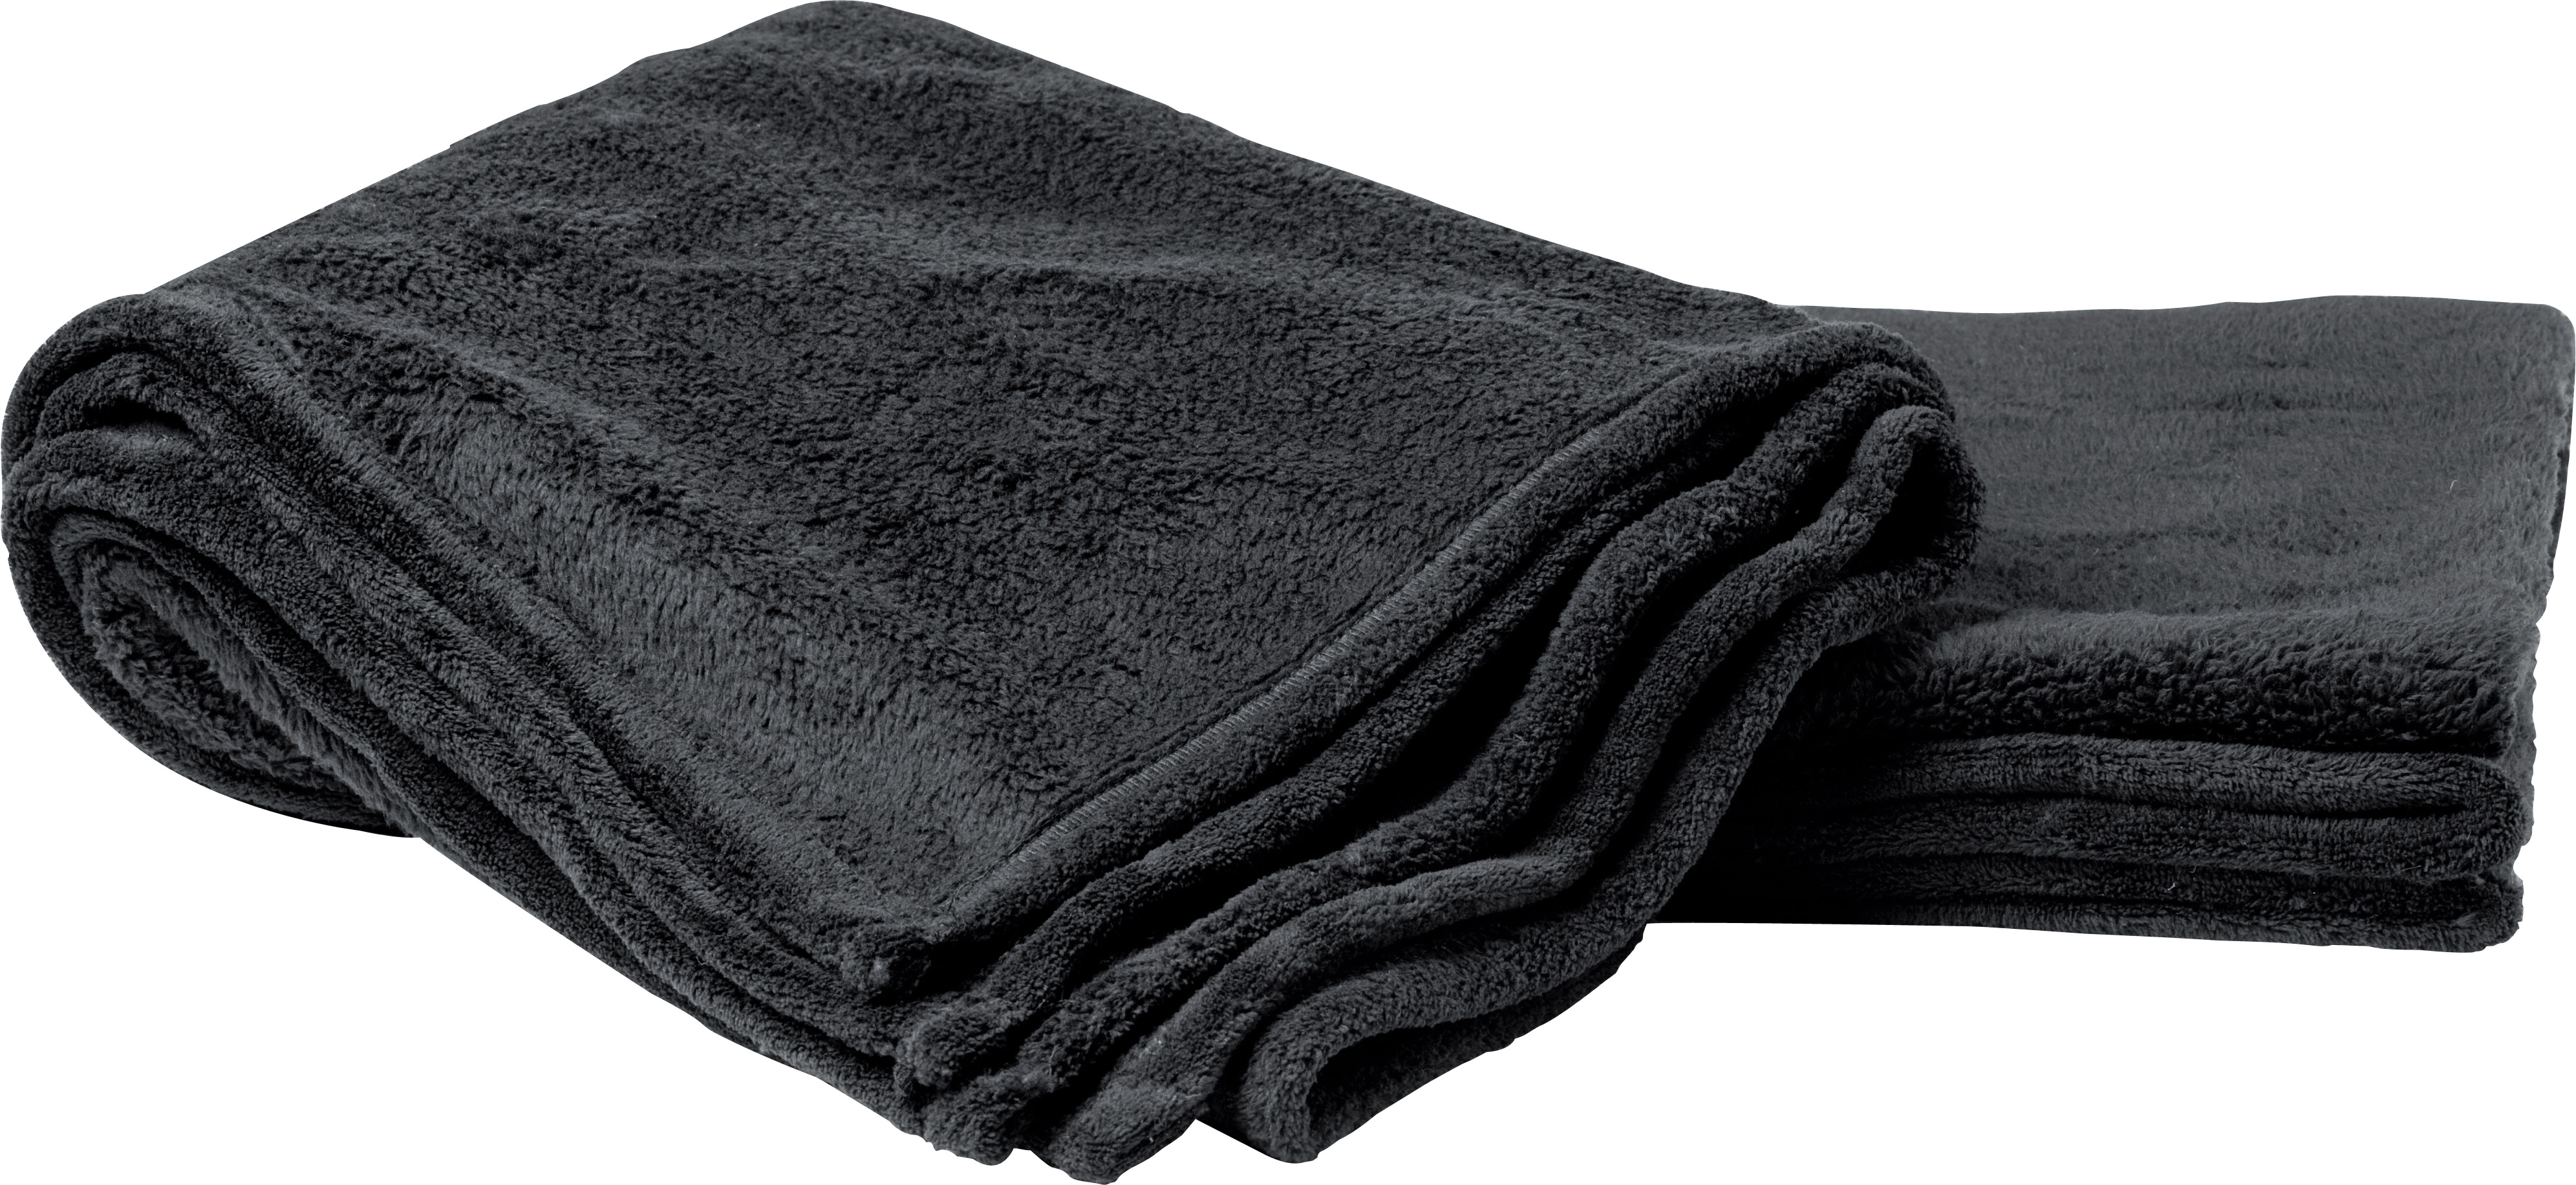 POLAR FLEECE BLANKET, 180 x 120 cms.